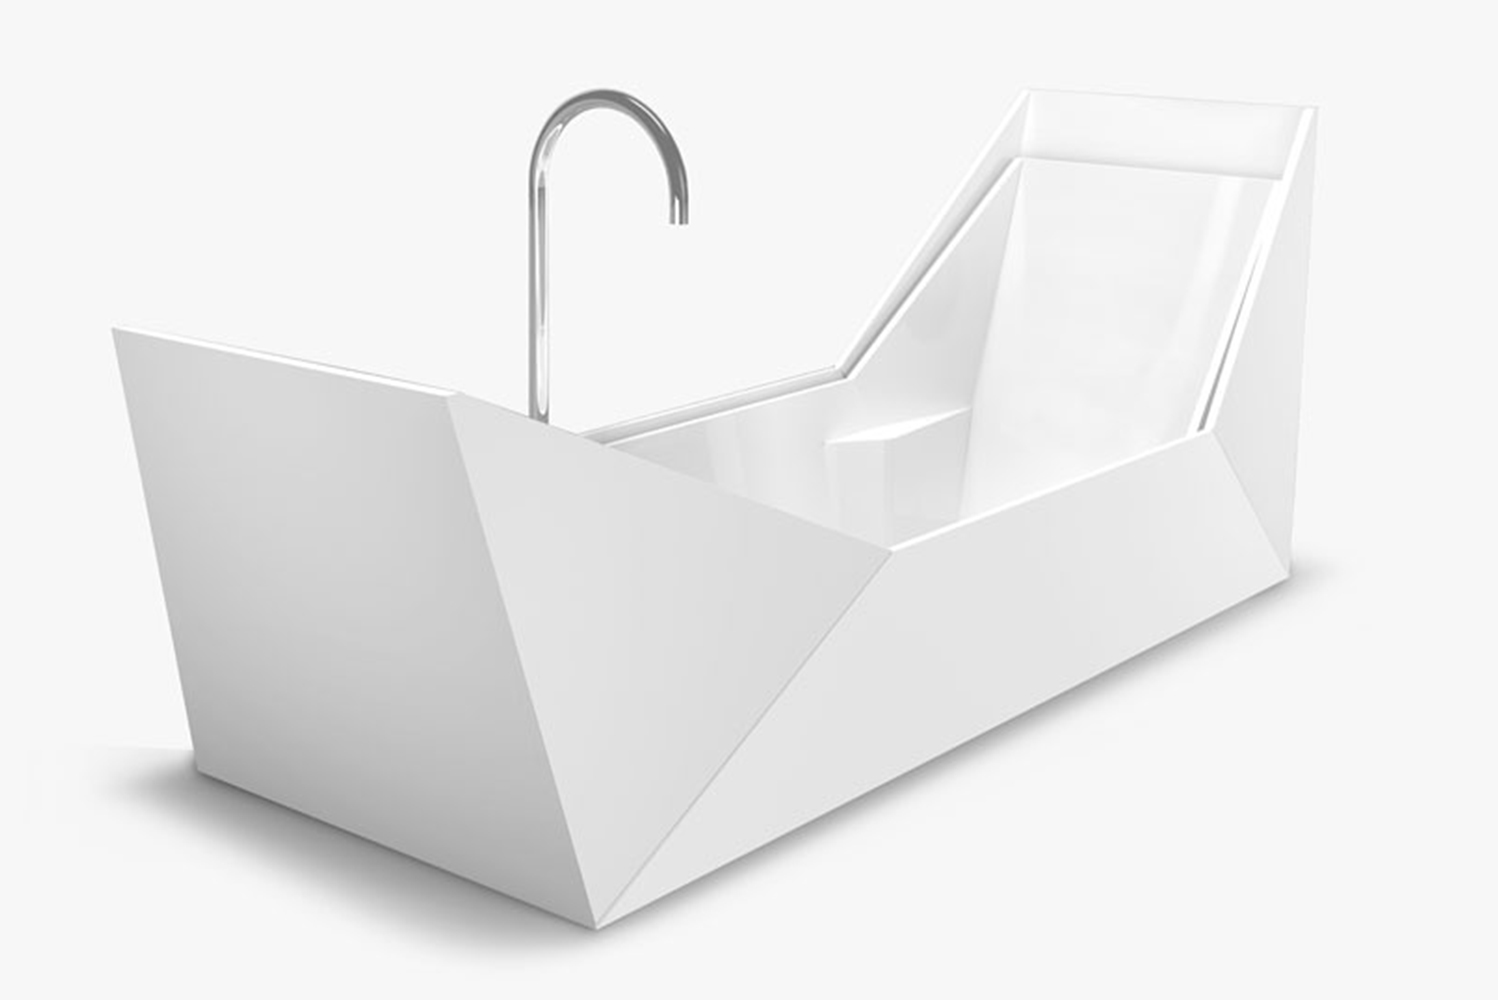 There are five designs across baths and basins sized to suit a variety of interior applications.